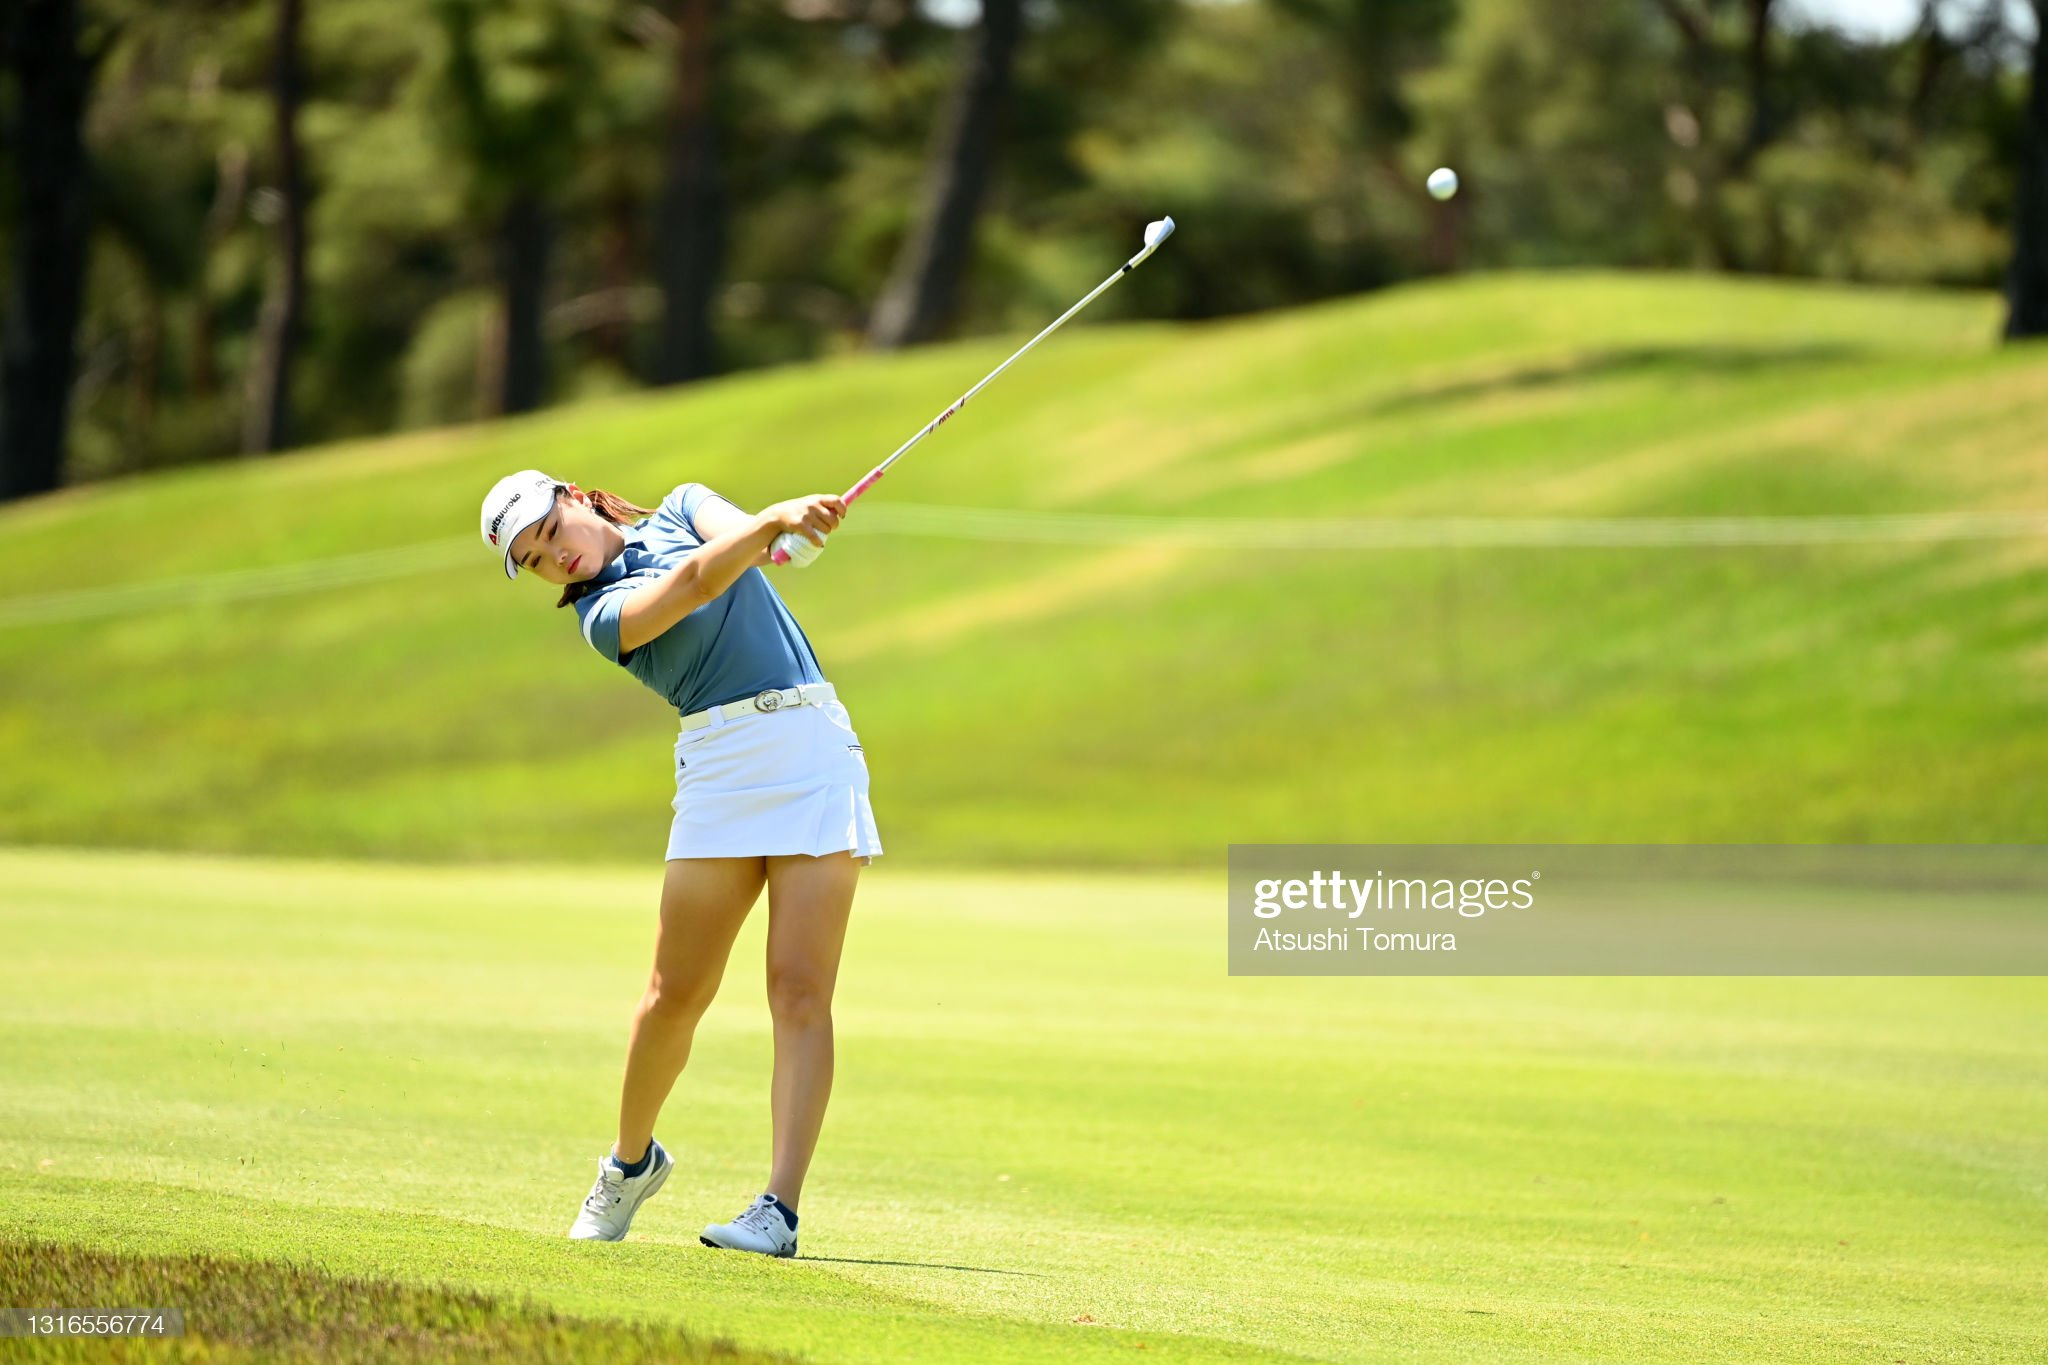 https://media.gettyimages.com/photos/yuting-seki-of-china-hits-her-second-shot-on-the-11th-hole-during-the-picture-id1316556774?s=2048x2048